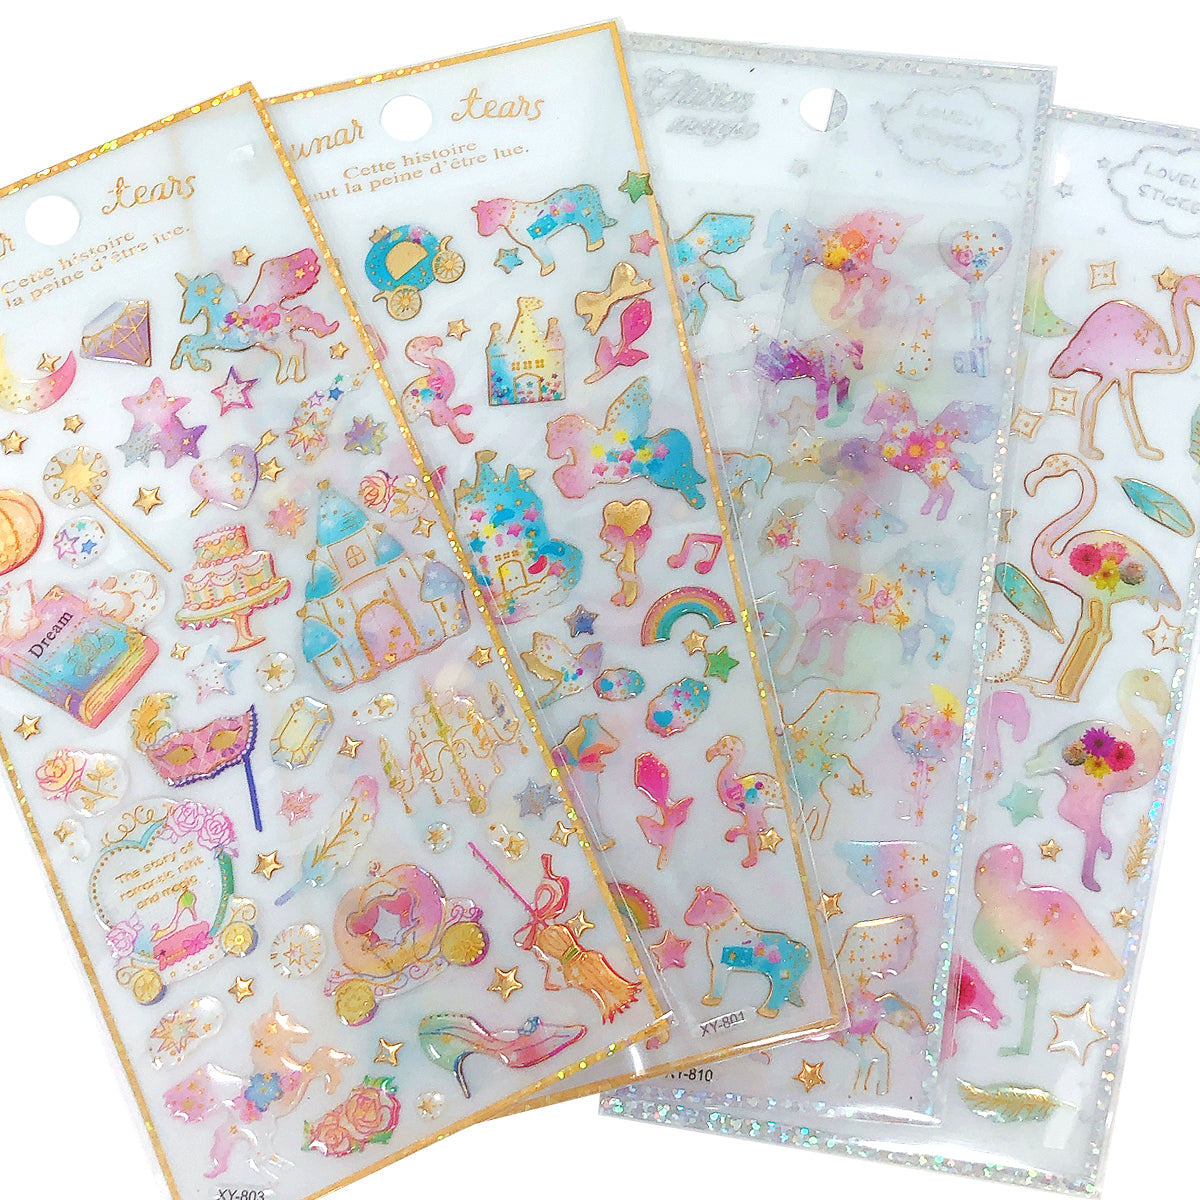 Wrapables 3D Epoxy Stickers for Scrapbooking, Journal, Planner, Decals for Phone or Notebook (4 Sheets)